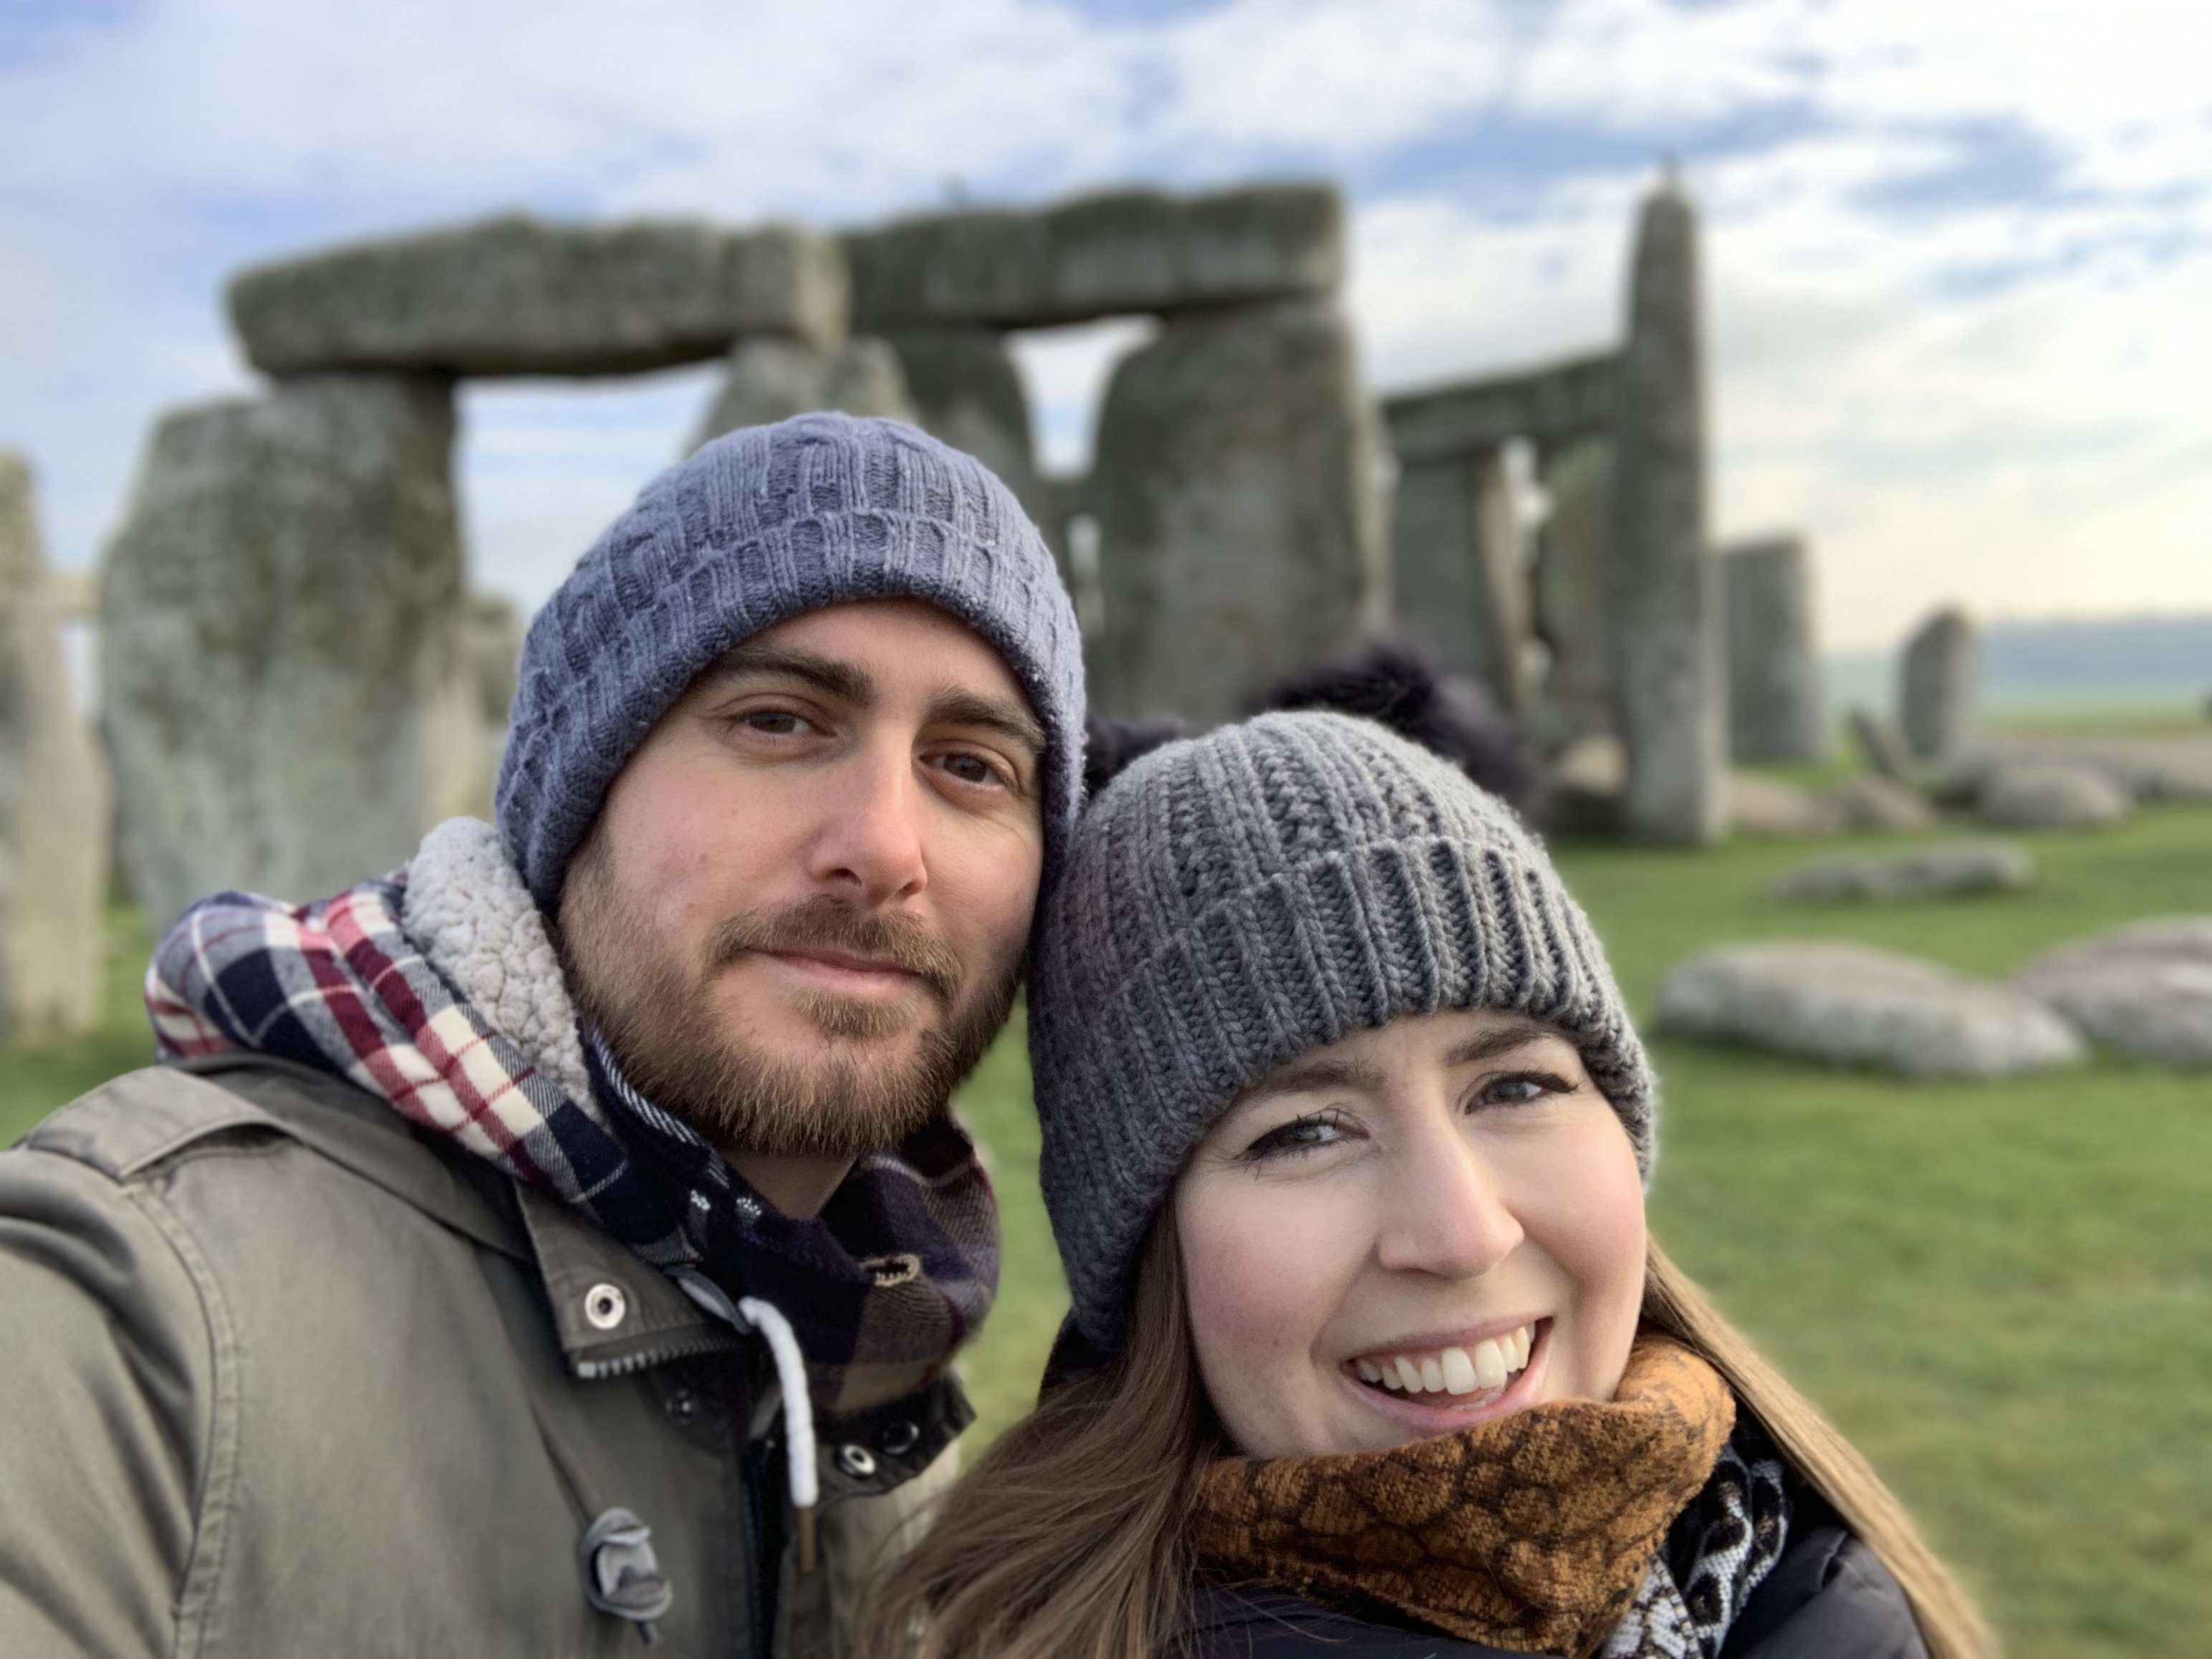 Ticking Stonehenge off the bucket list